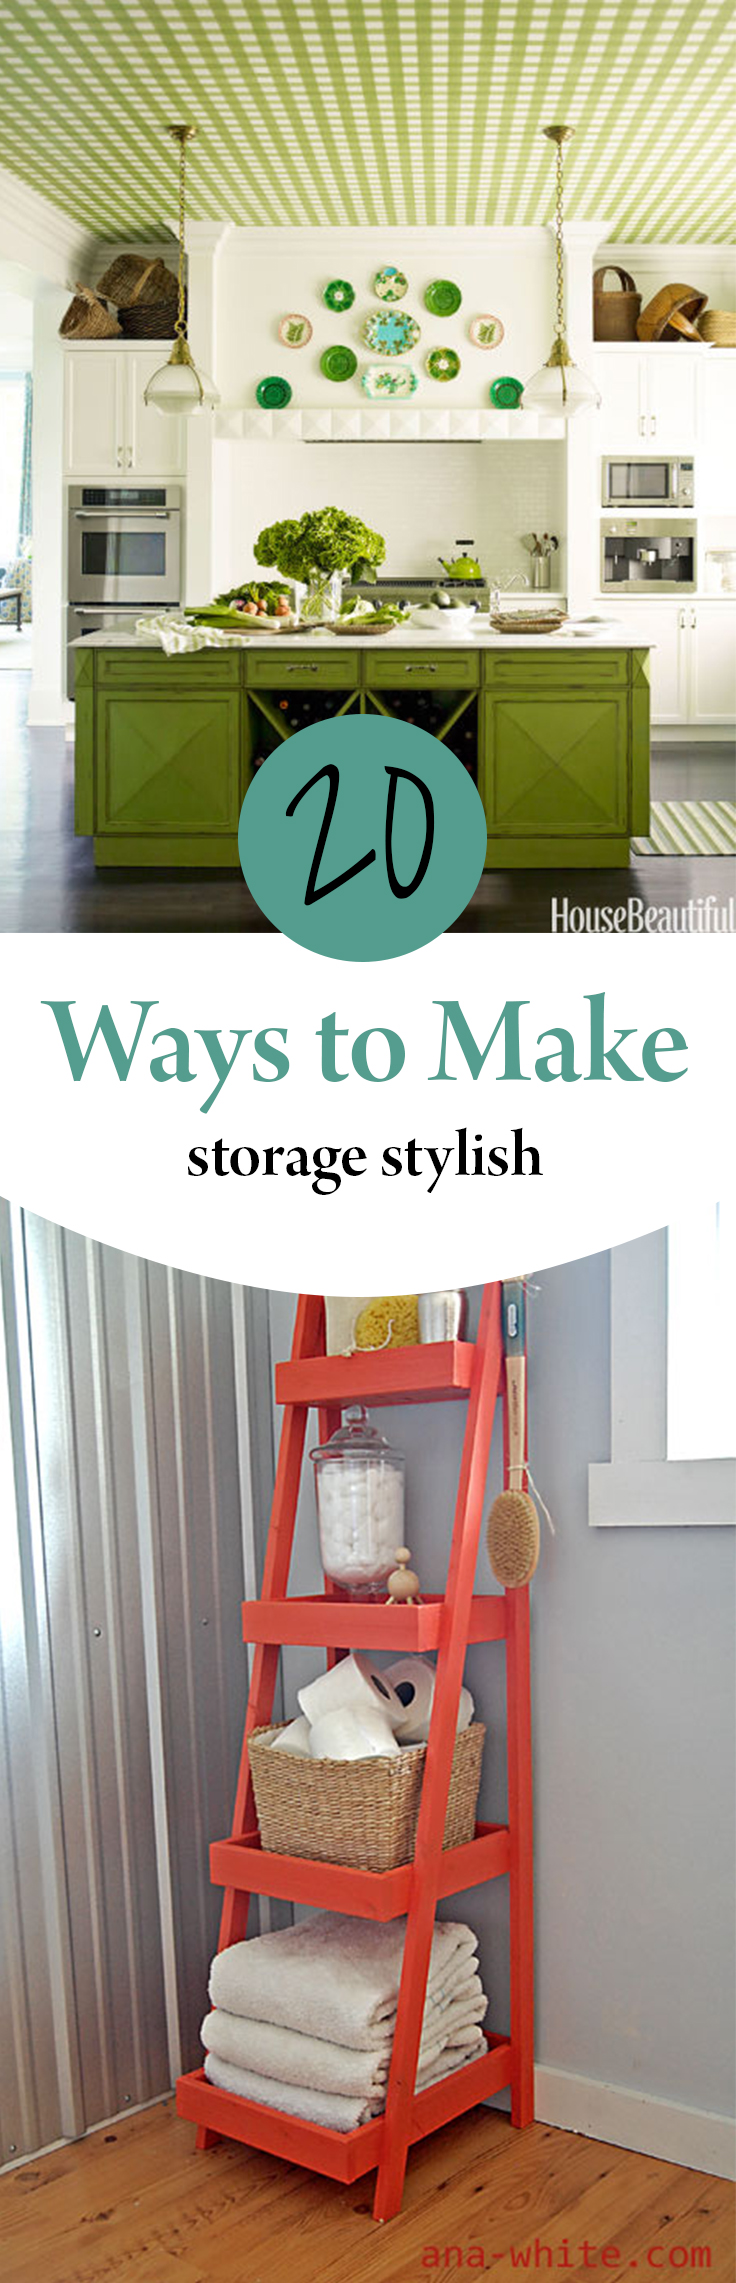 Storage, storage hacks, stylish storage, home storage, home organization, popular pin, DIY organization, DIY home.